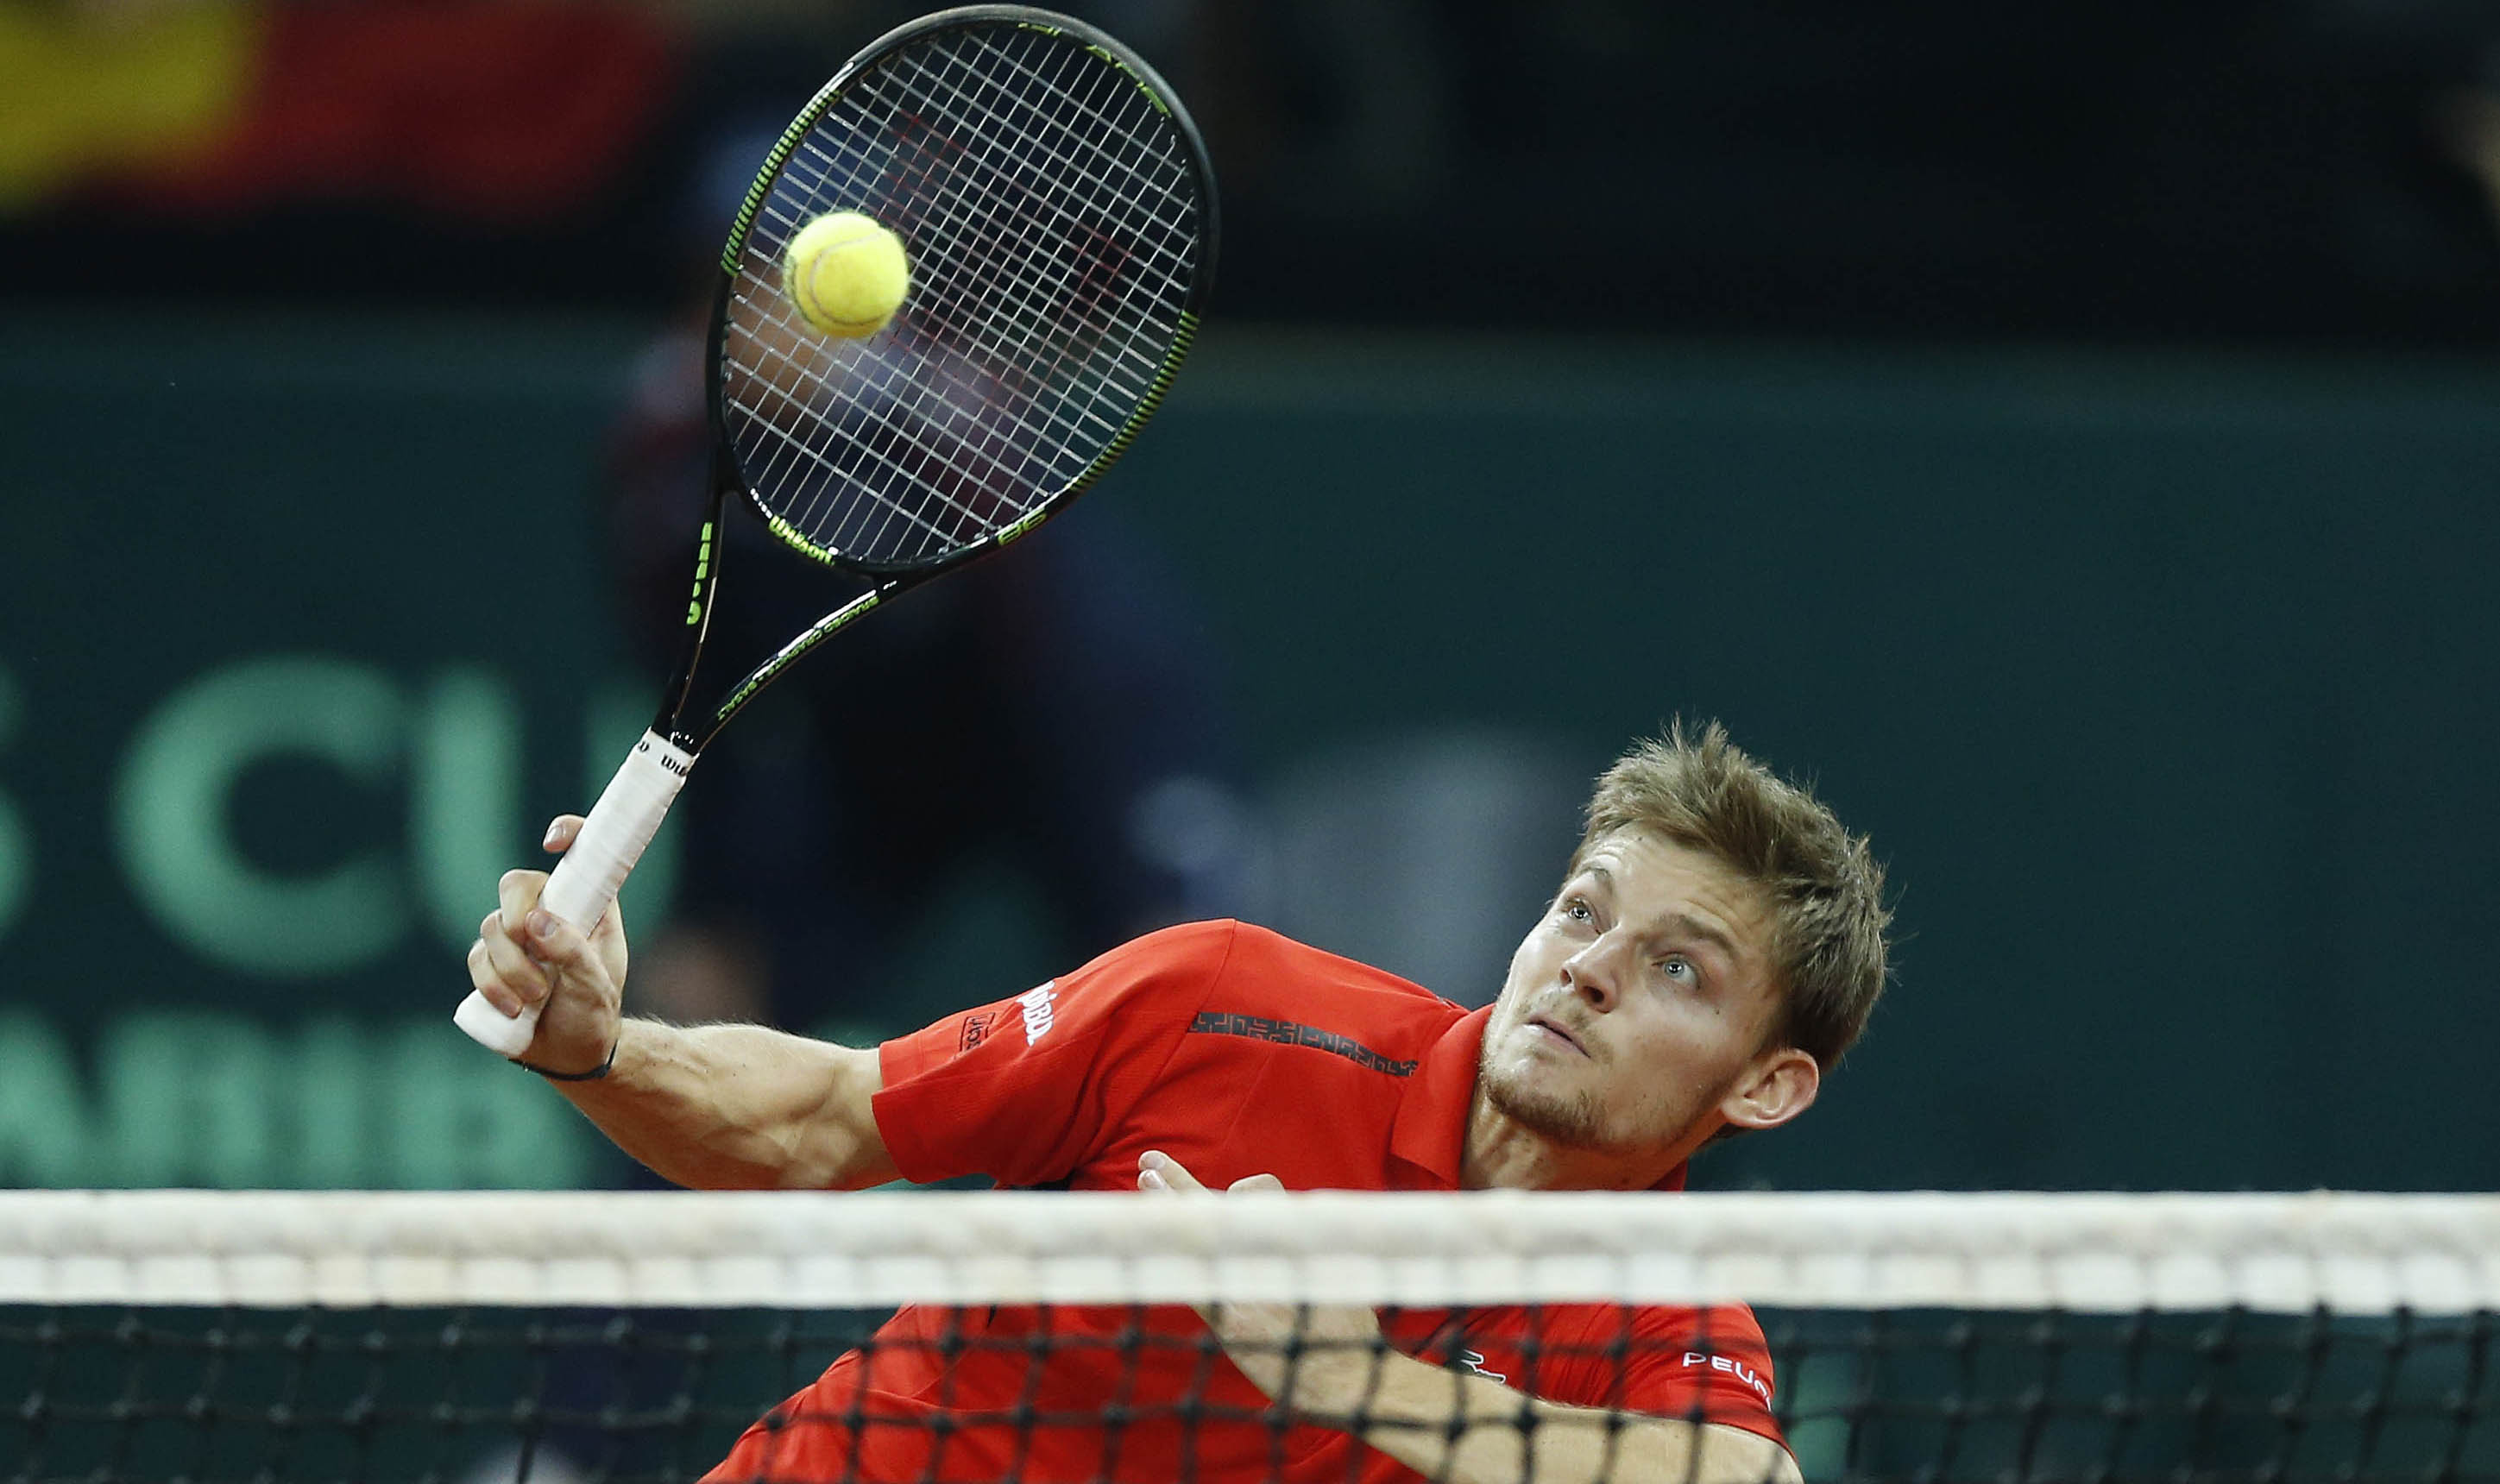 David Goffin hits a wonderful winner to clinch a great doubles point